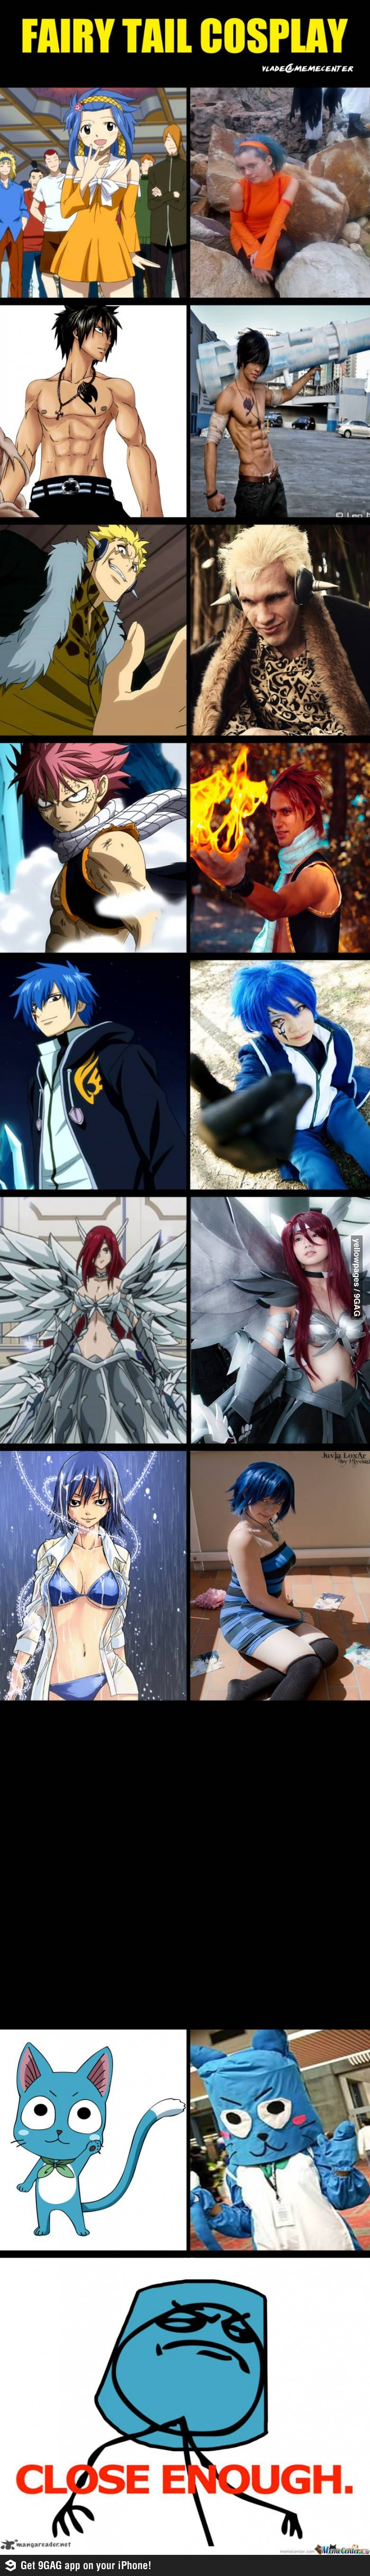 30 best images about Cosplay fails on Pinterest | Smosh ...